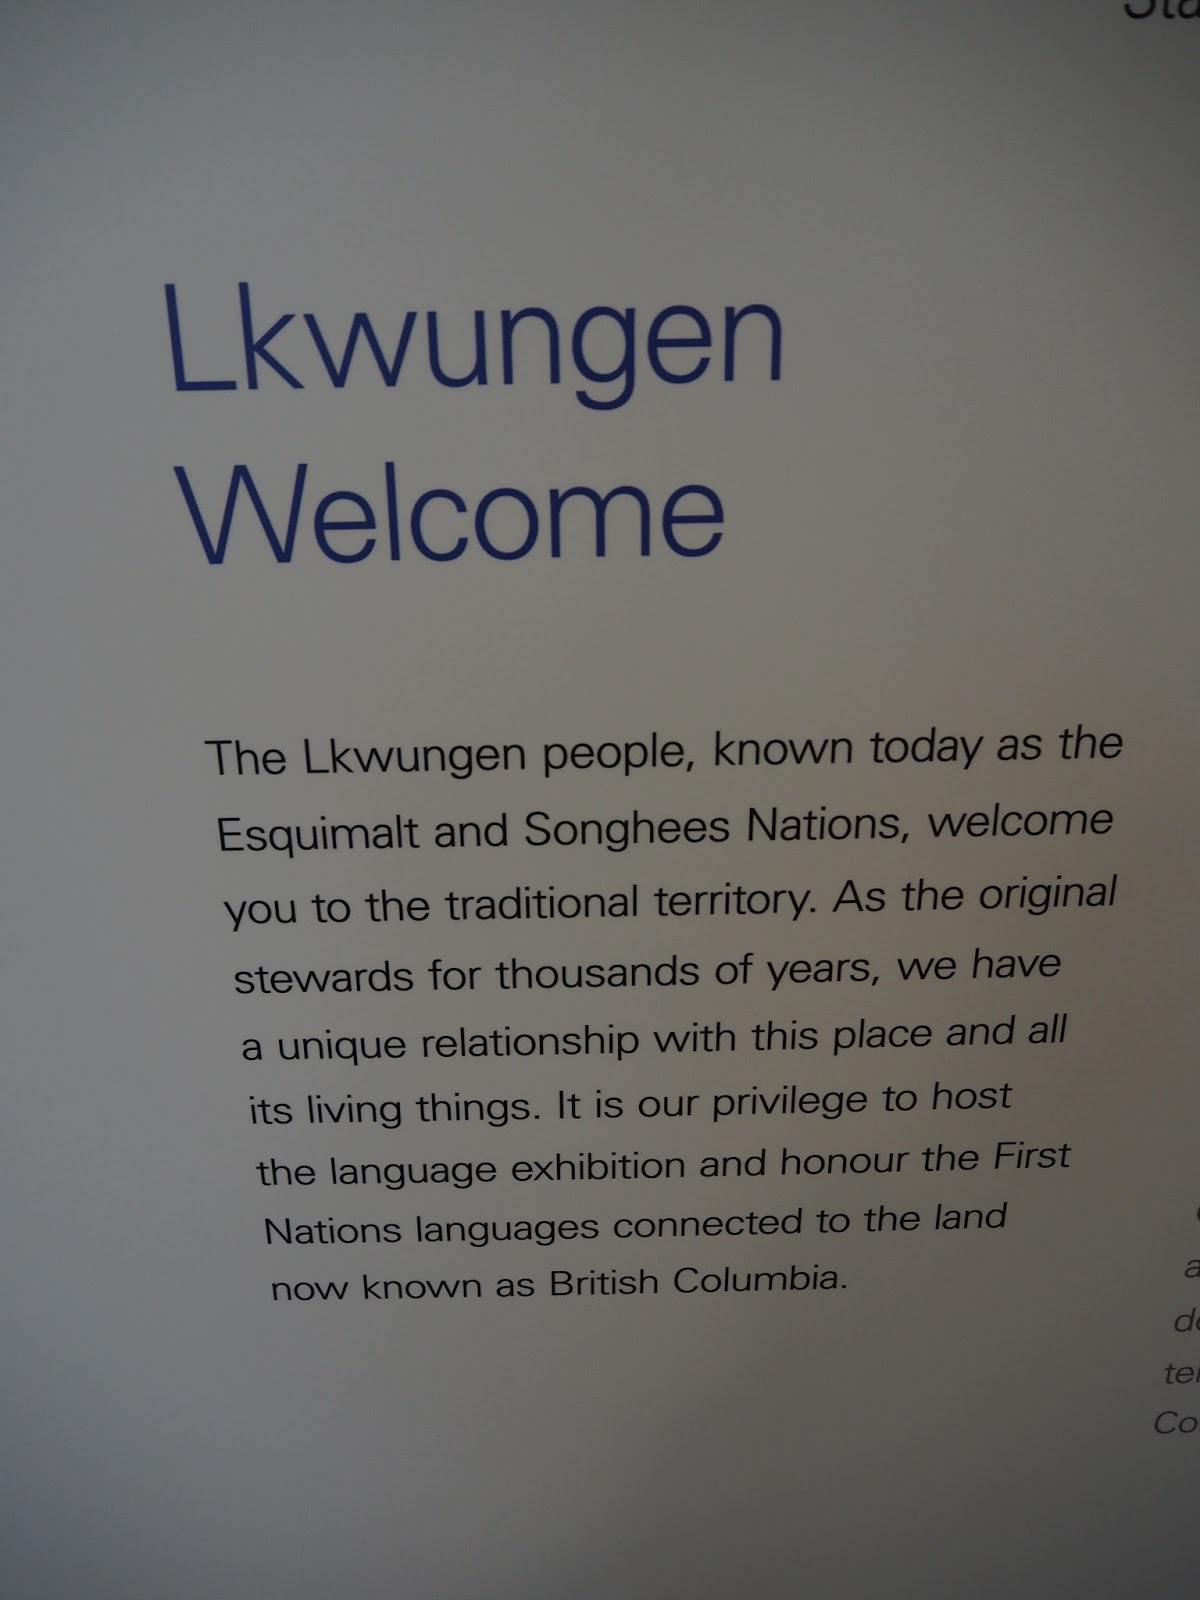 Mesum Of Living Languages notes on culture: first peoples galleries, royal bc museum